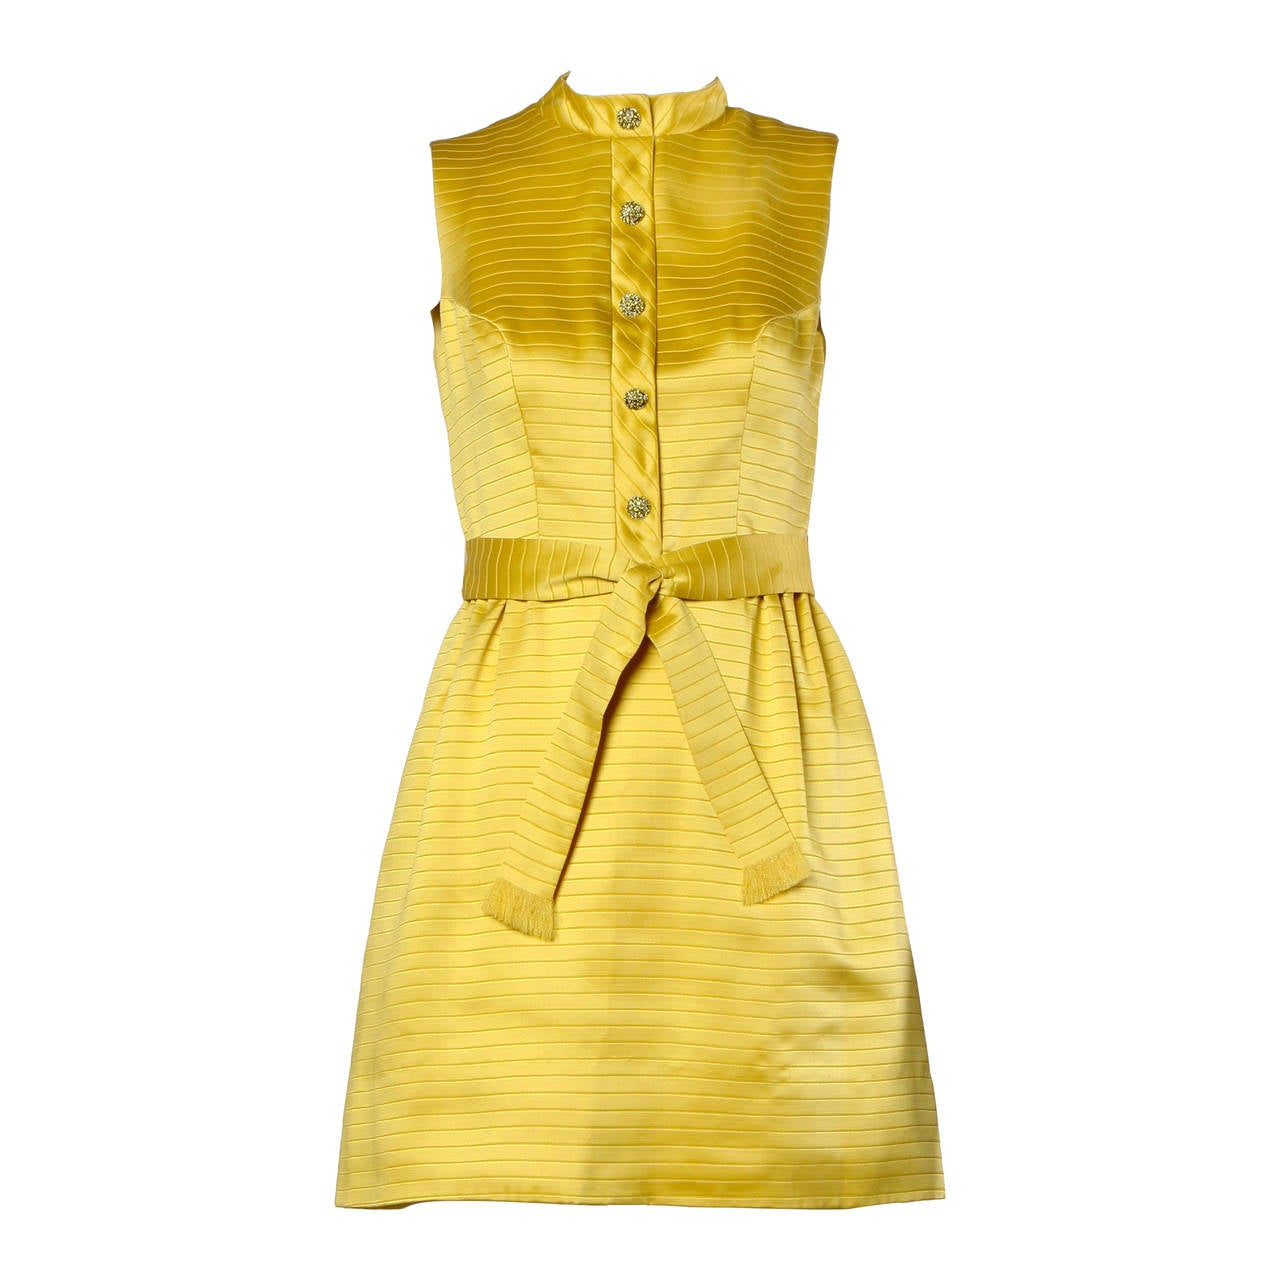 Darling 1960s Vintage Yellow Mini Dress with Rhinestone Buttons For Sale